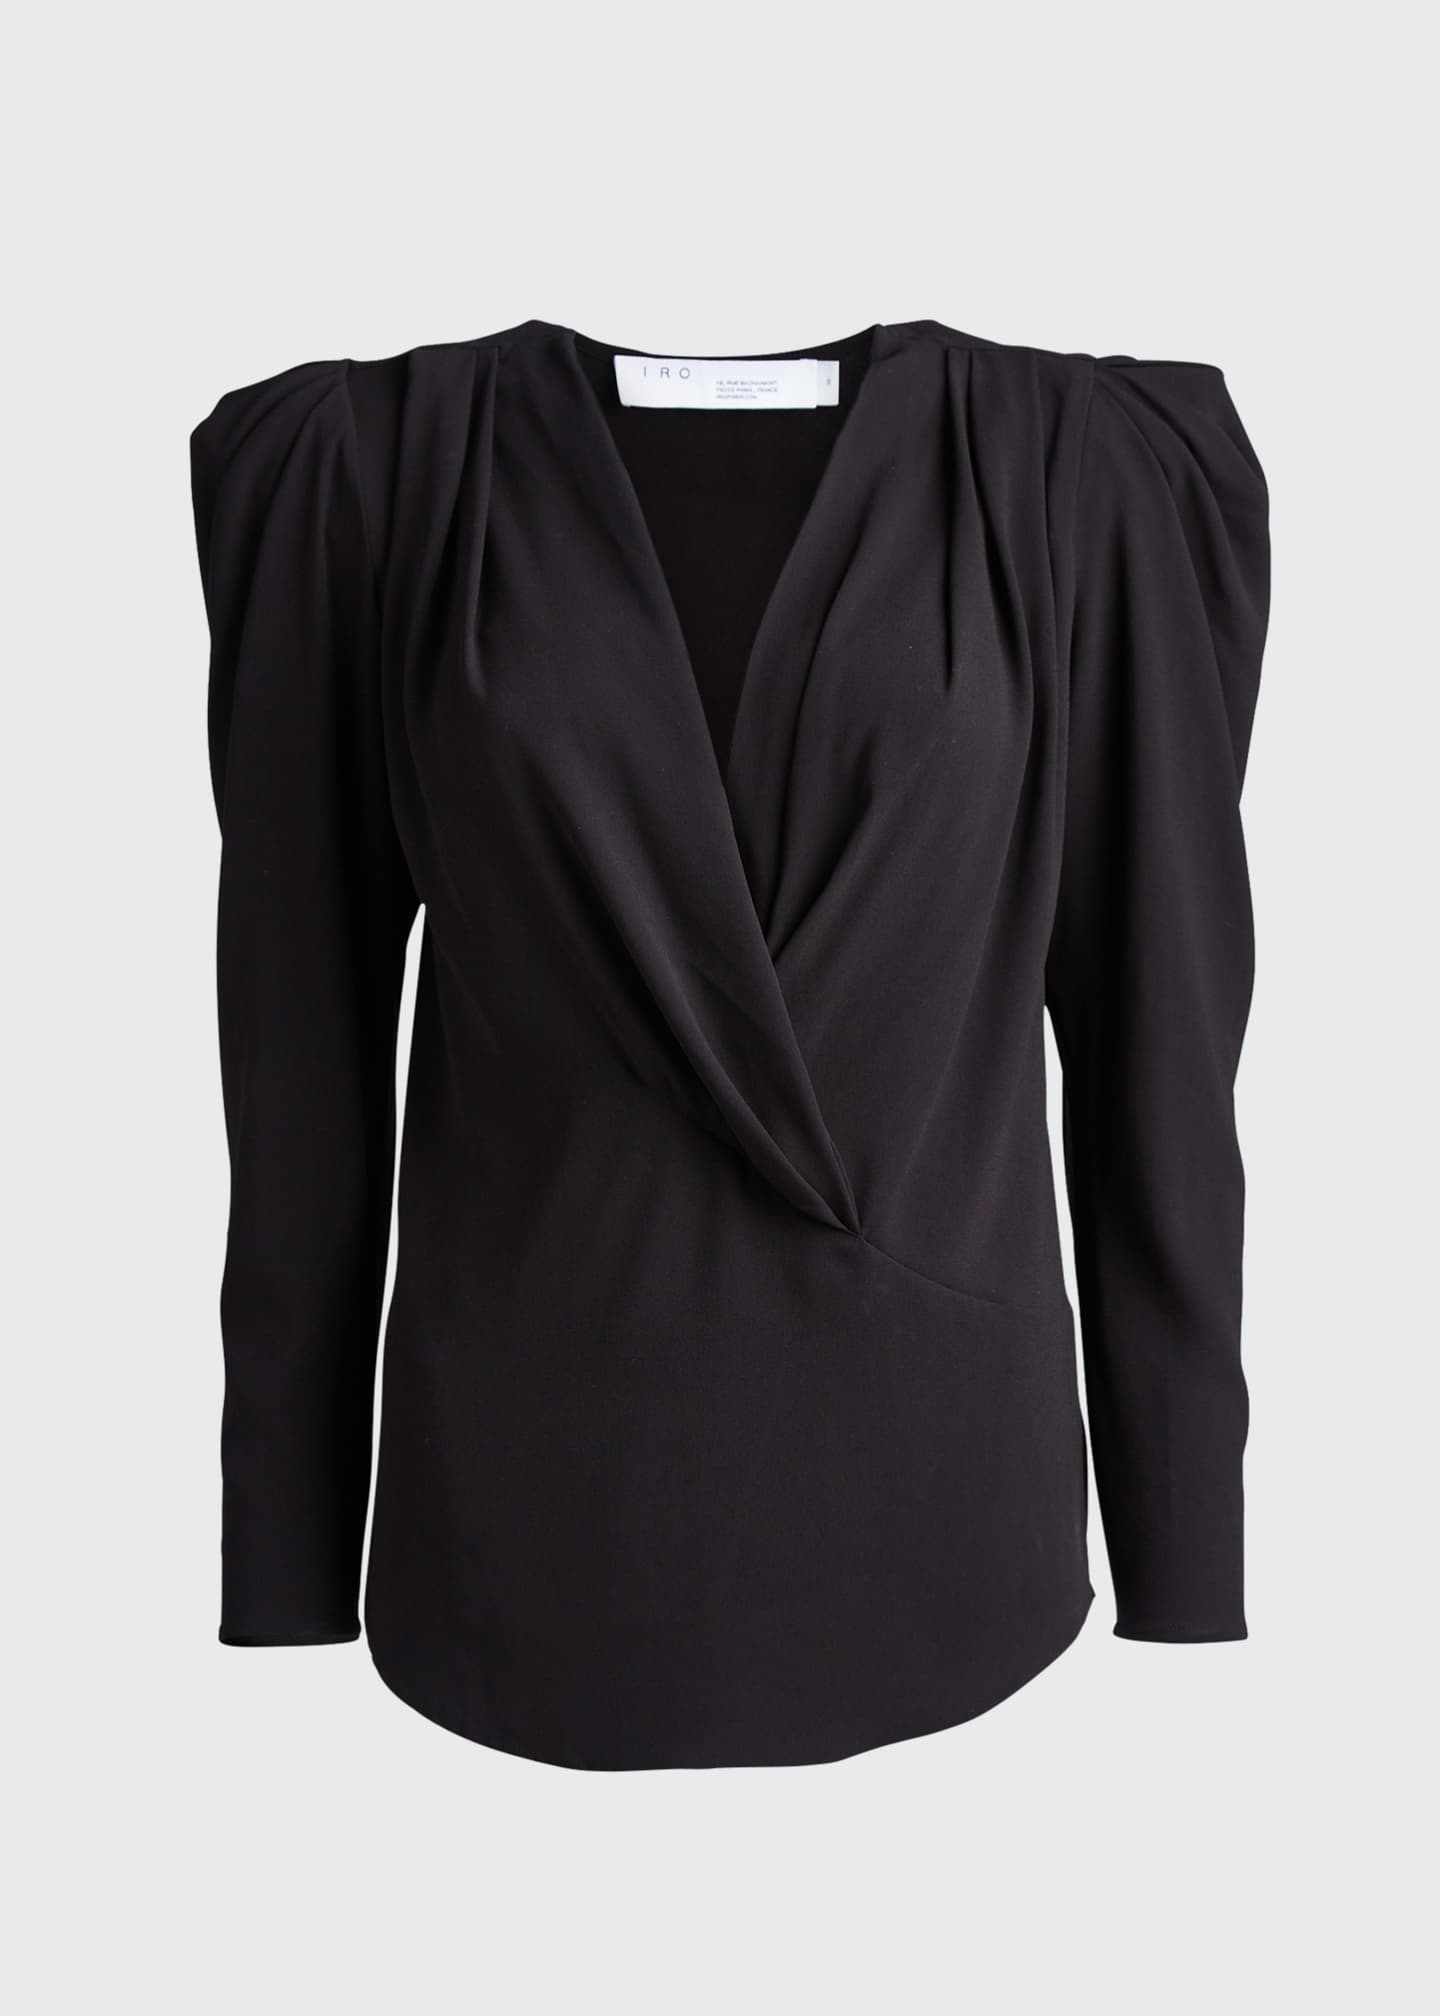 Image 5 of 5: Charina Strong-Shoulder V-Neck Blouse